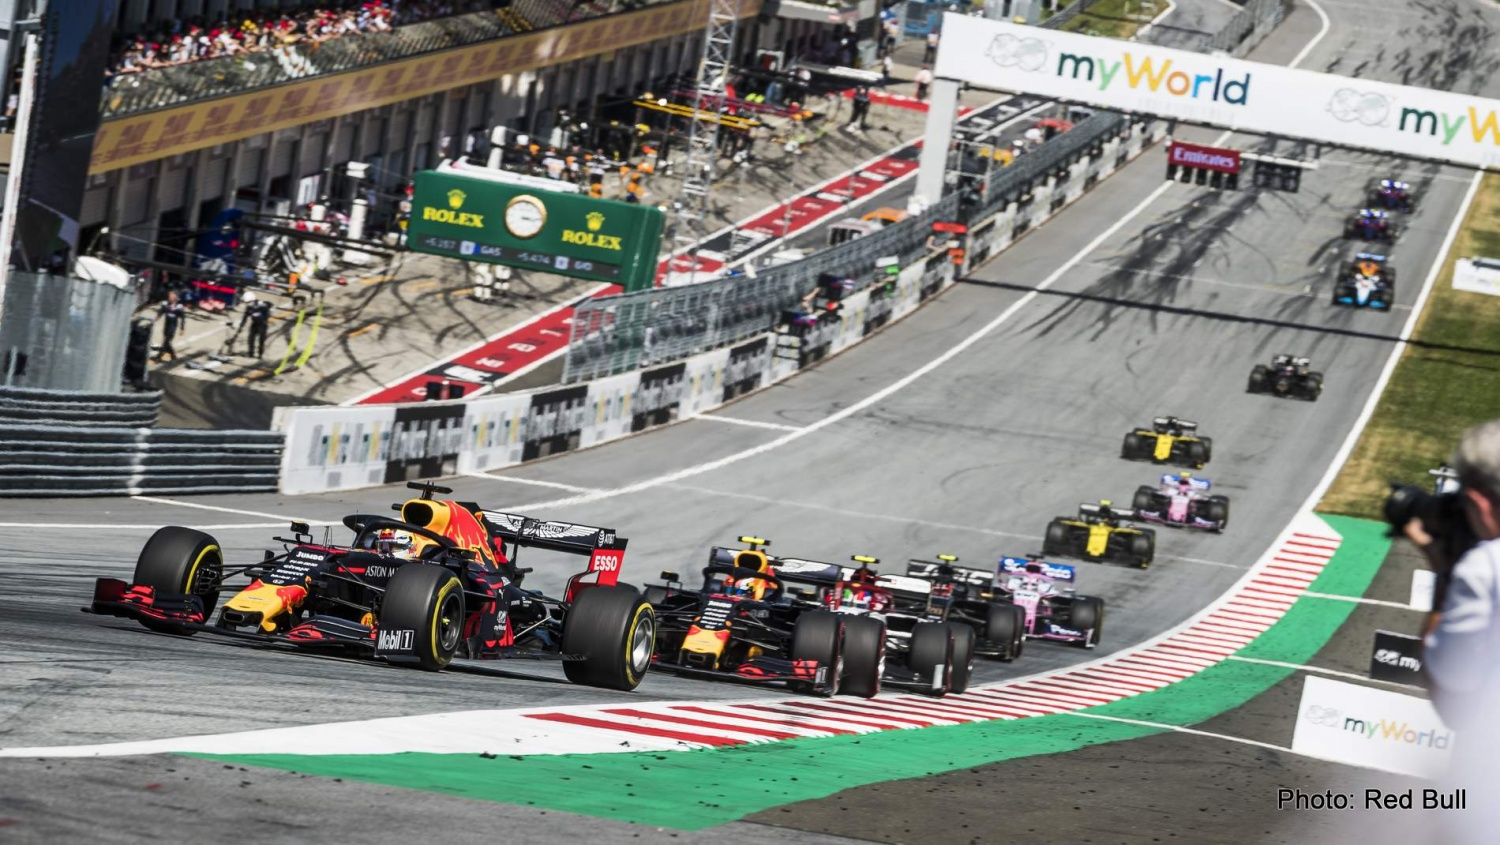 Austrian Grand Prix Preview: Facts & Stats